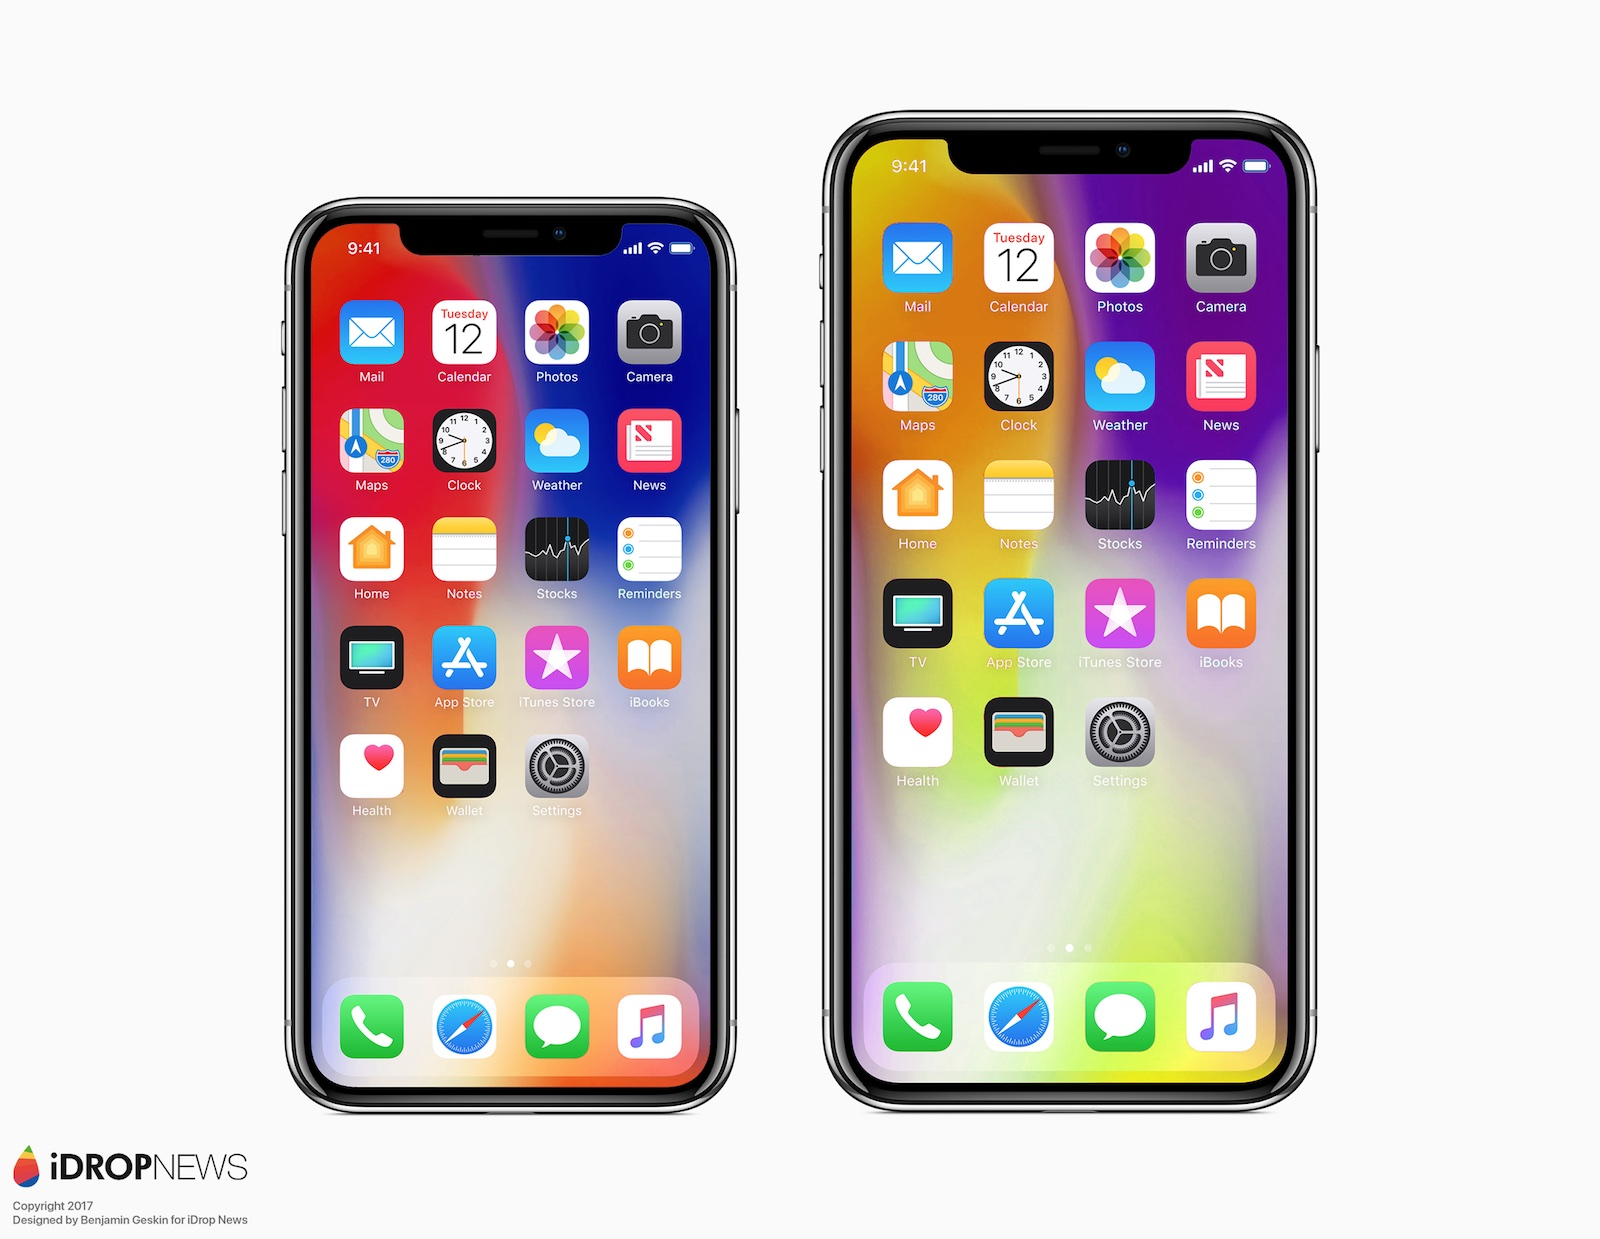 iPhone X Plus Release Date, Images, Price, and Specs